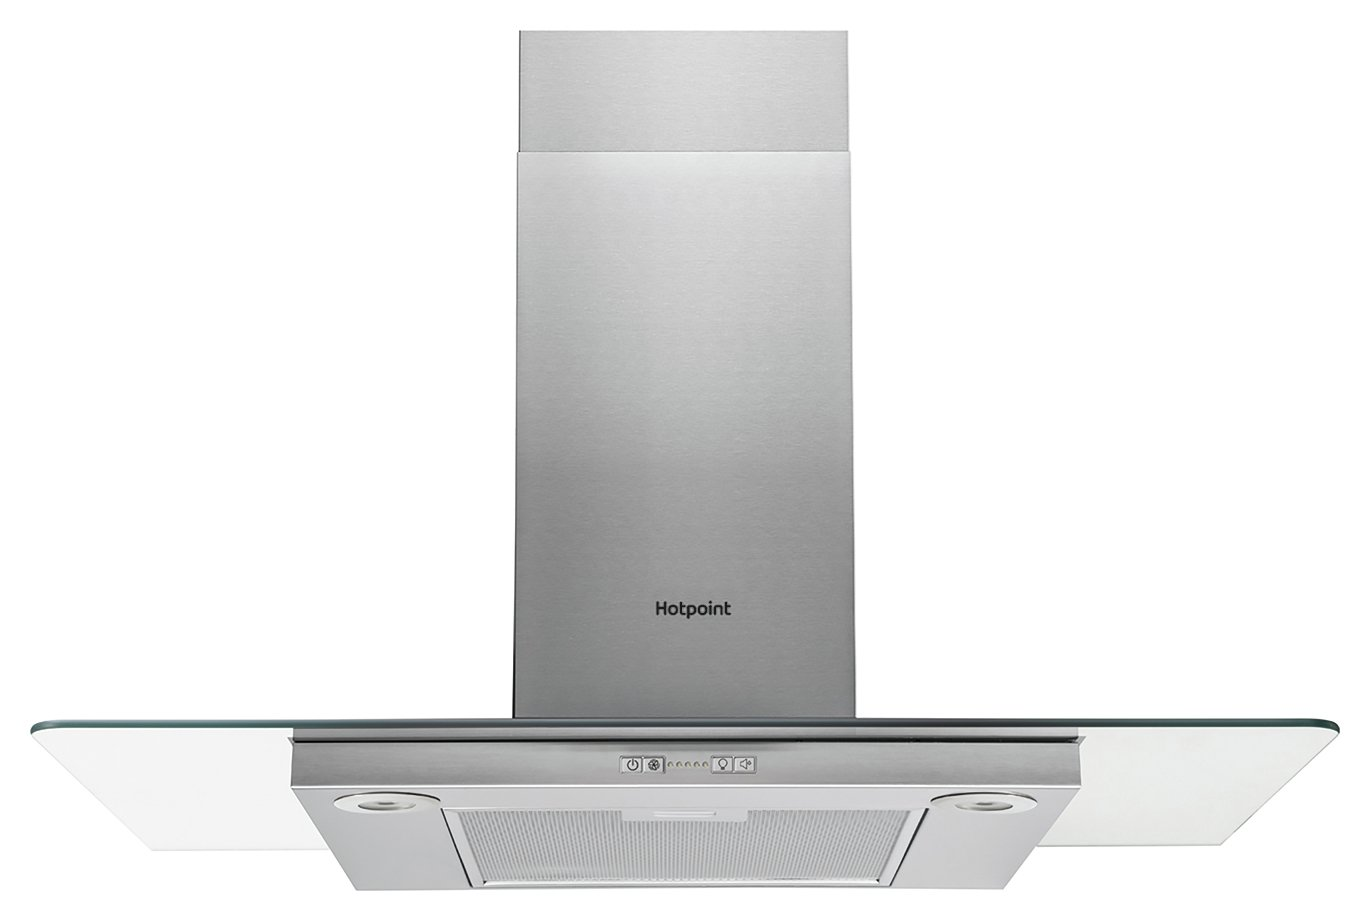 Hotpoint PHFG9.4FLMX 90cm Cooker Hood - Stainless Steel